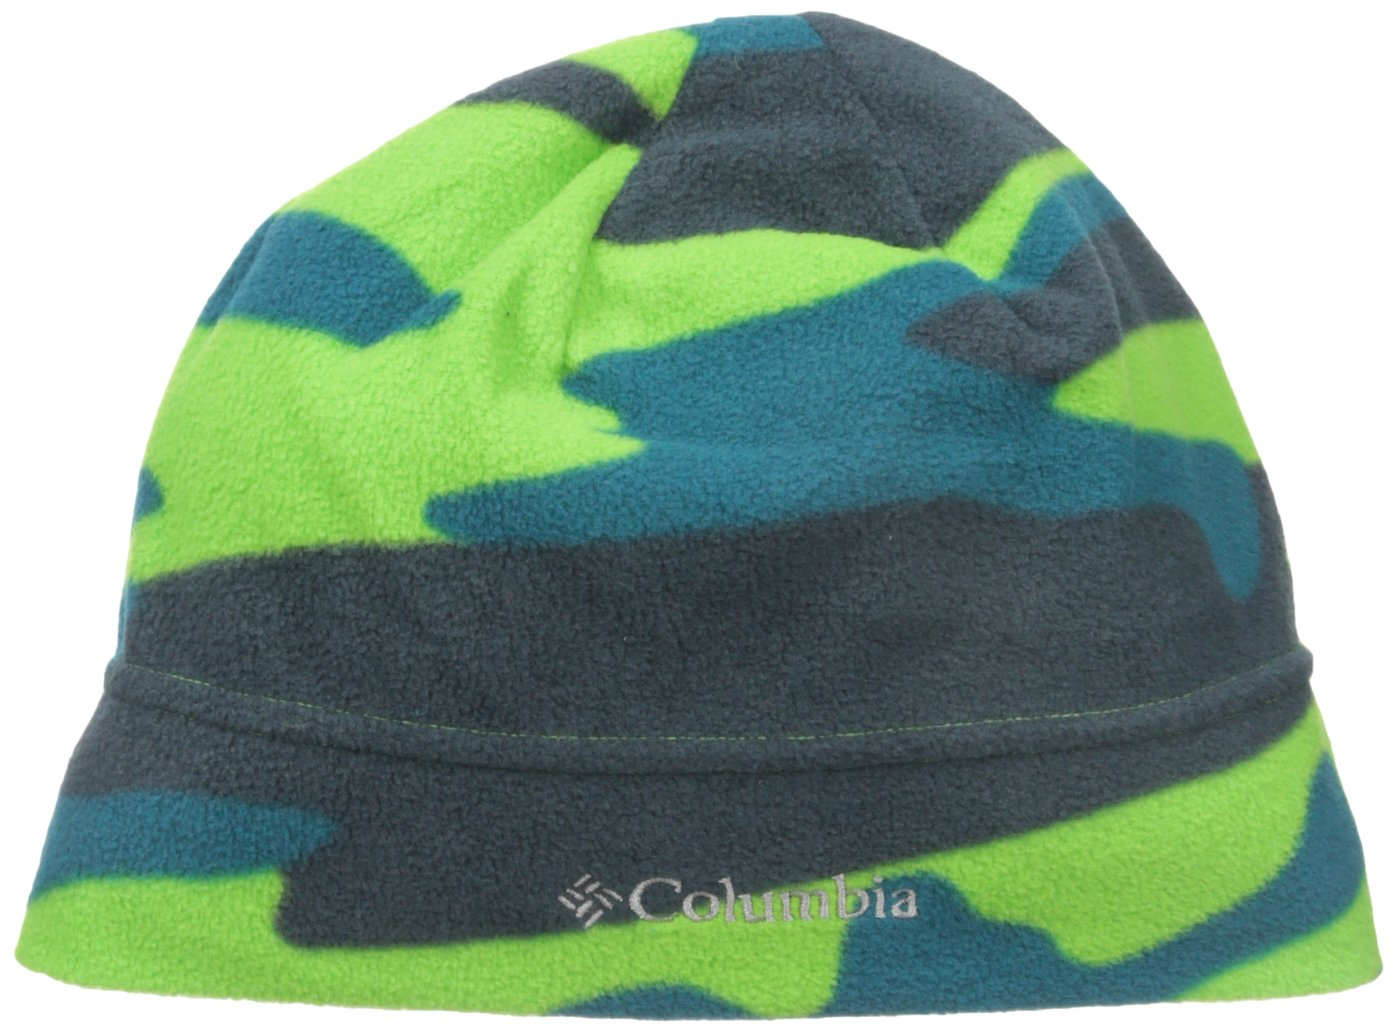 00b673d93f70c Buy Columbia Big Boys  Youth Glacial Fleece Hat Online at Low Prices in  India - Amazon.in